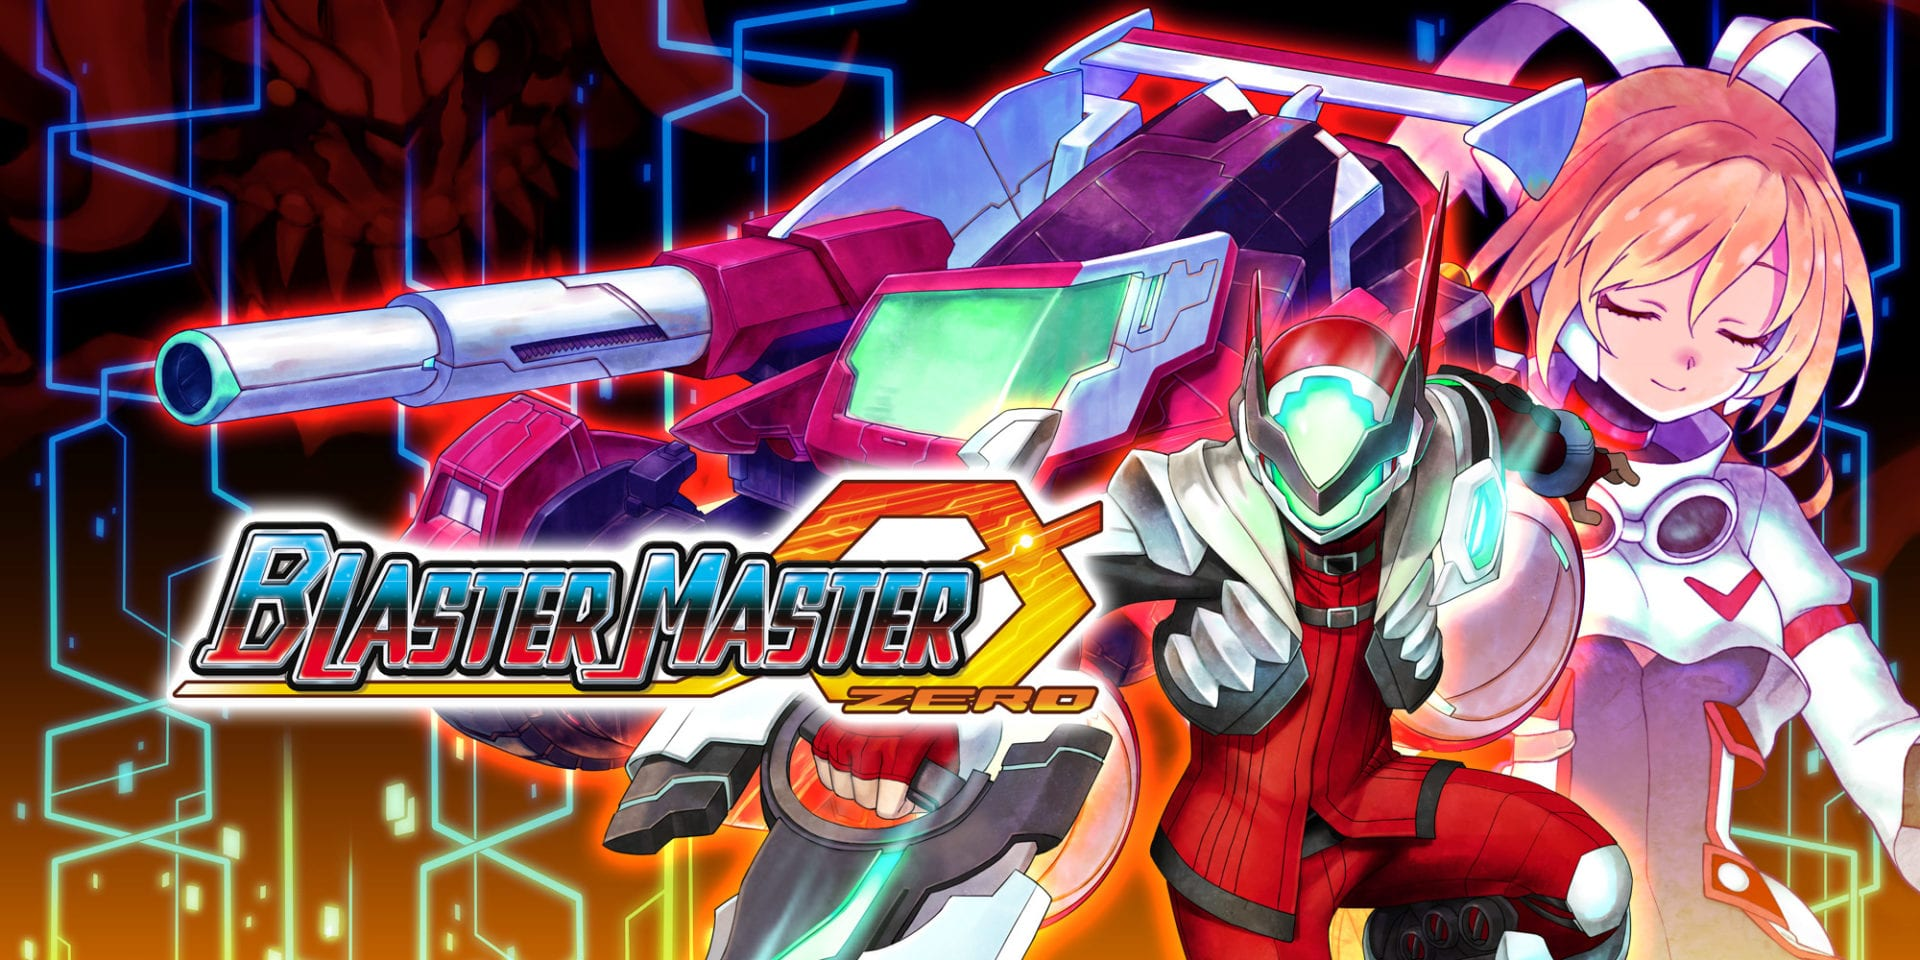 Preorders for Brave Wave's Blaster Master Zero 1 & 2 releases are now live